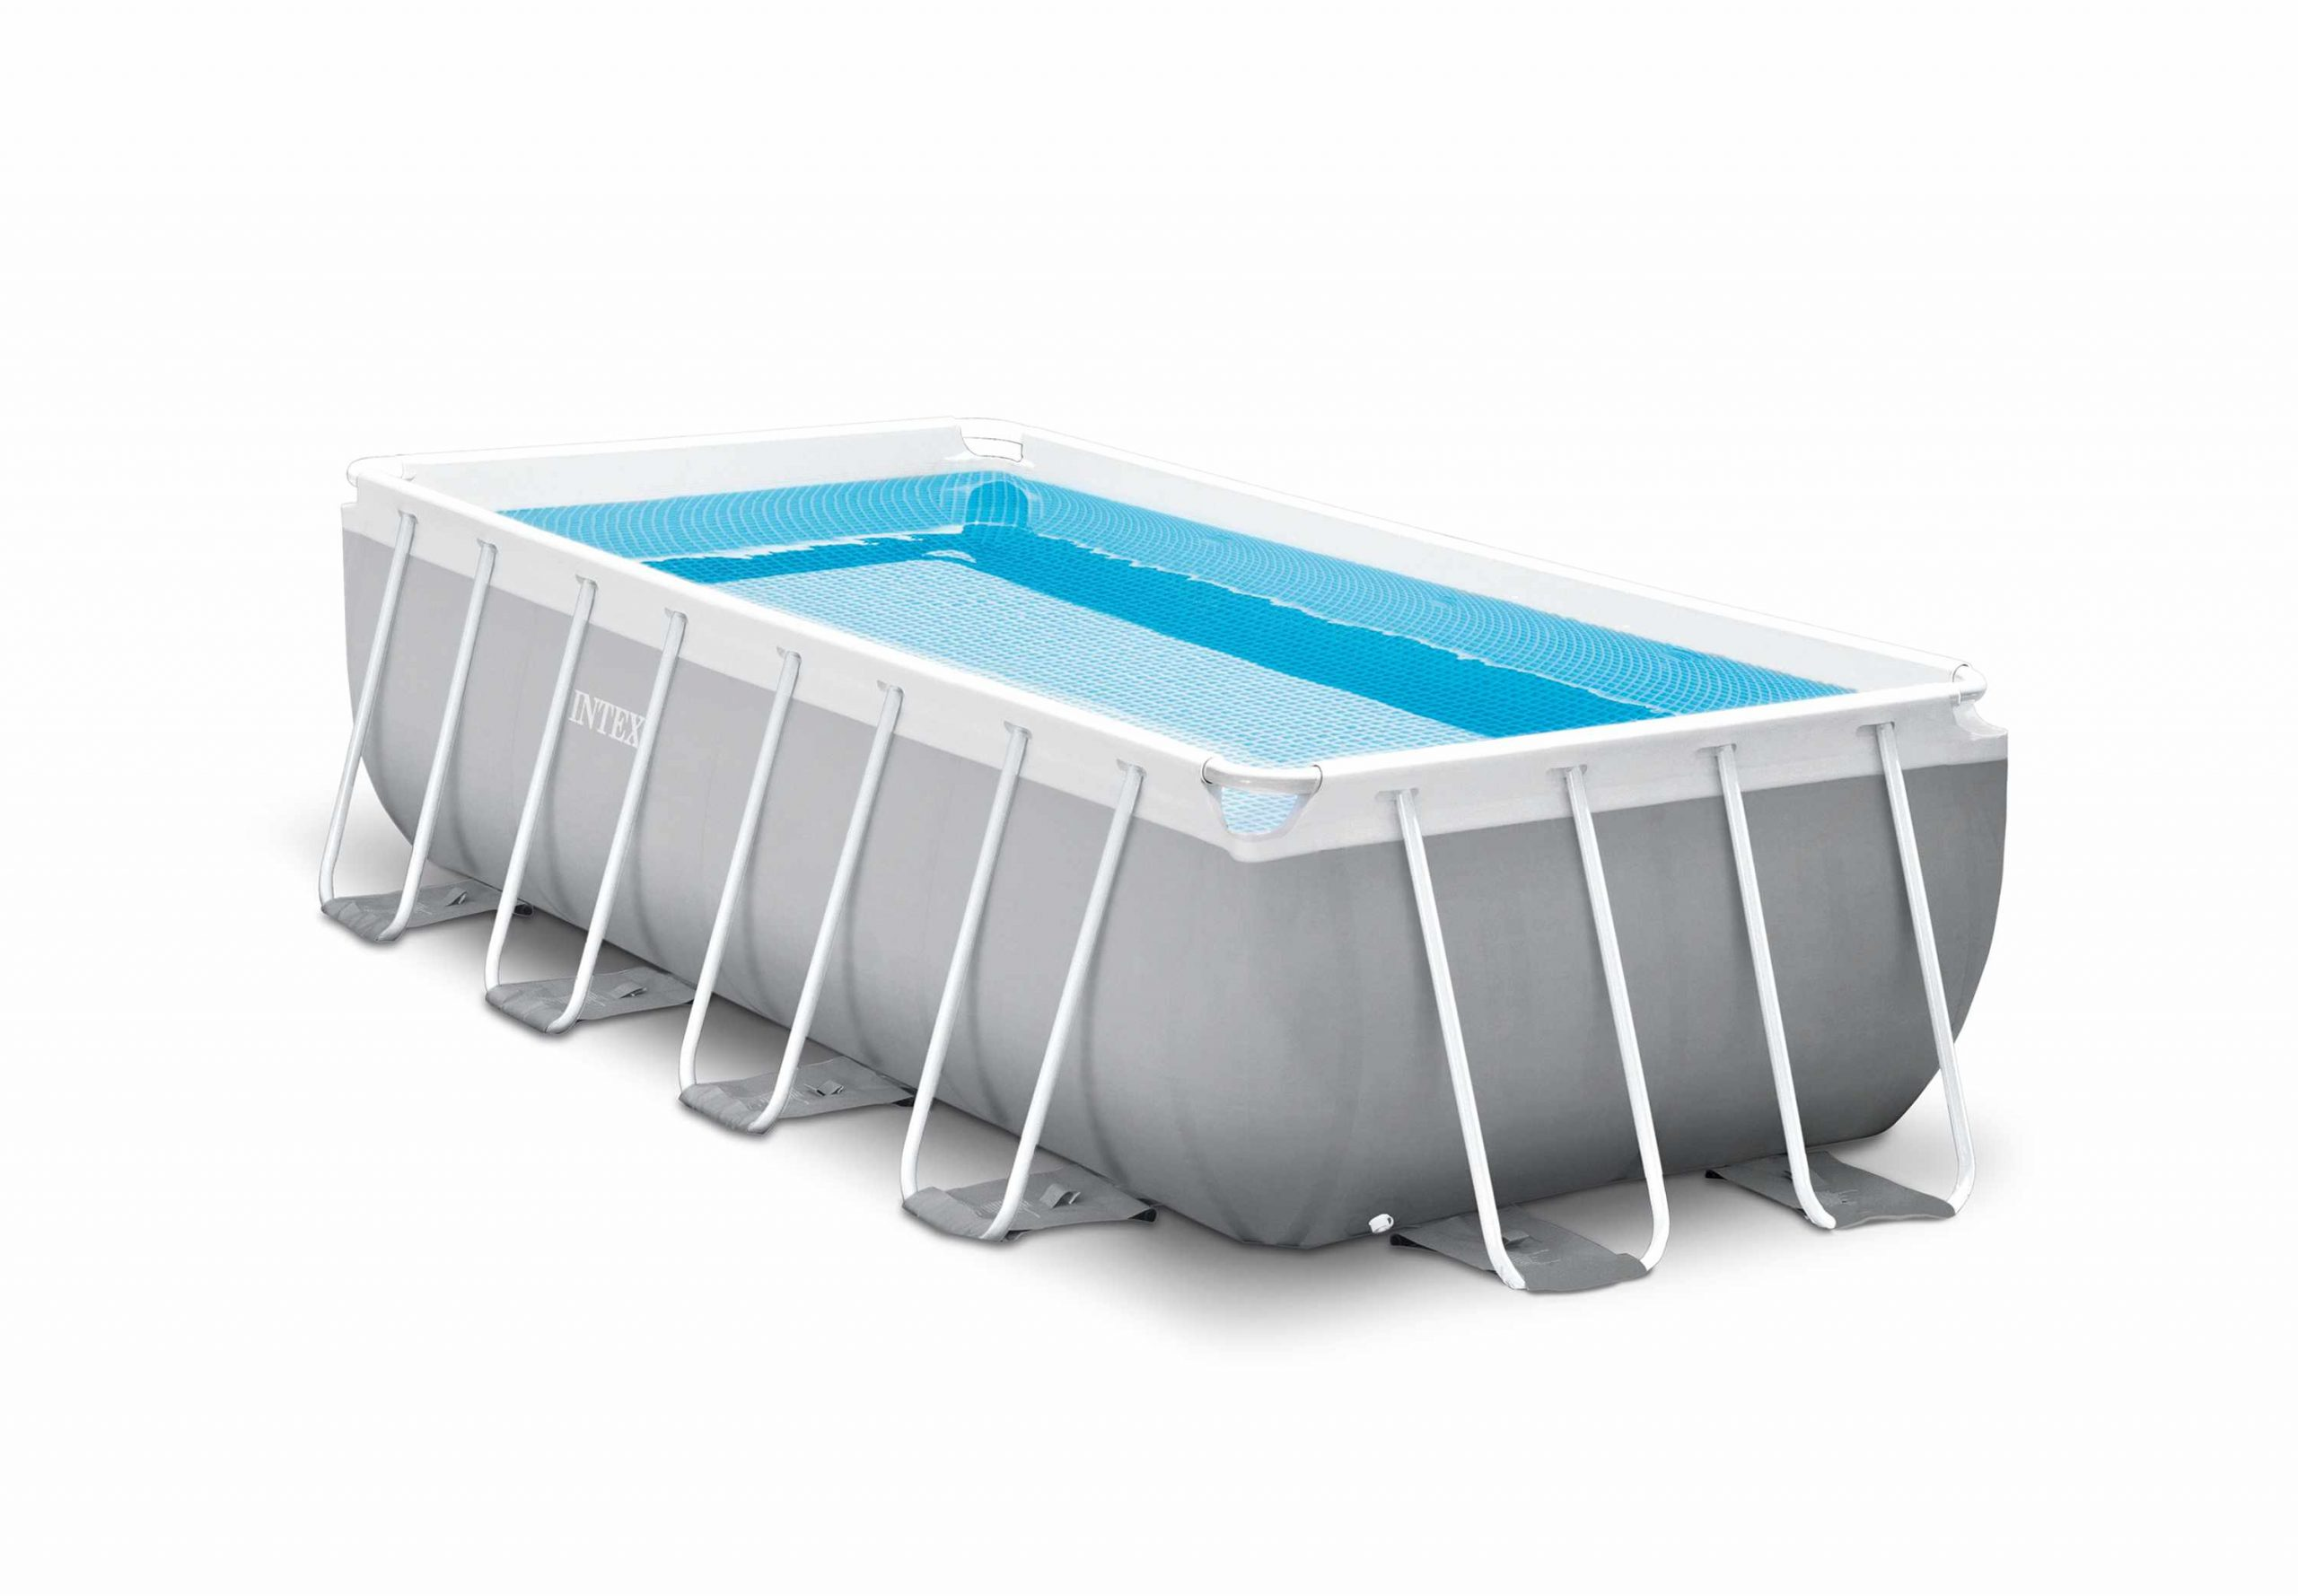 Piscine Hors-Sol Autoportante Intex 26788 Ex 26776 Rectangulaire Prism  Frame 400 X 200 X 100 Cm pour Piscine Hors Sol Rectangulaire Intex